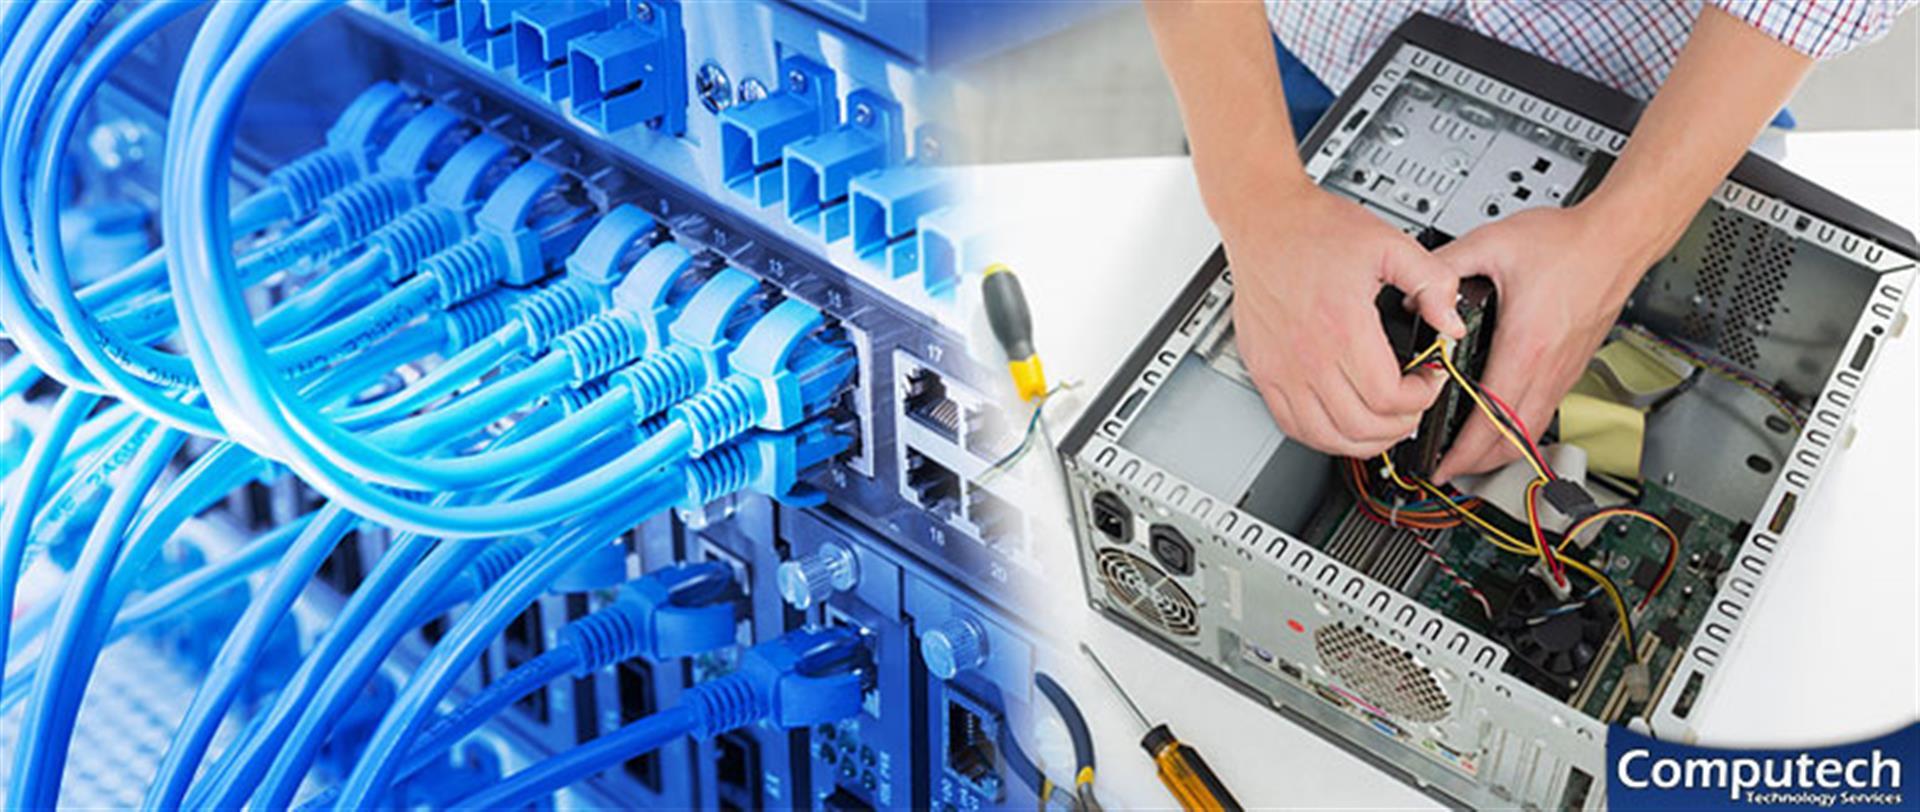 Hapeville Georgia Onsite Computer & Printer Repairs, Networking, Voice & Data Cabling Services